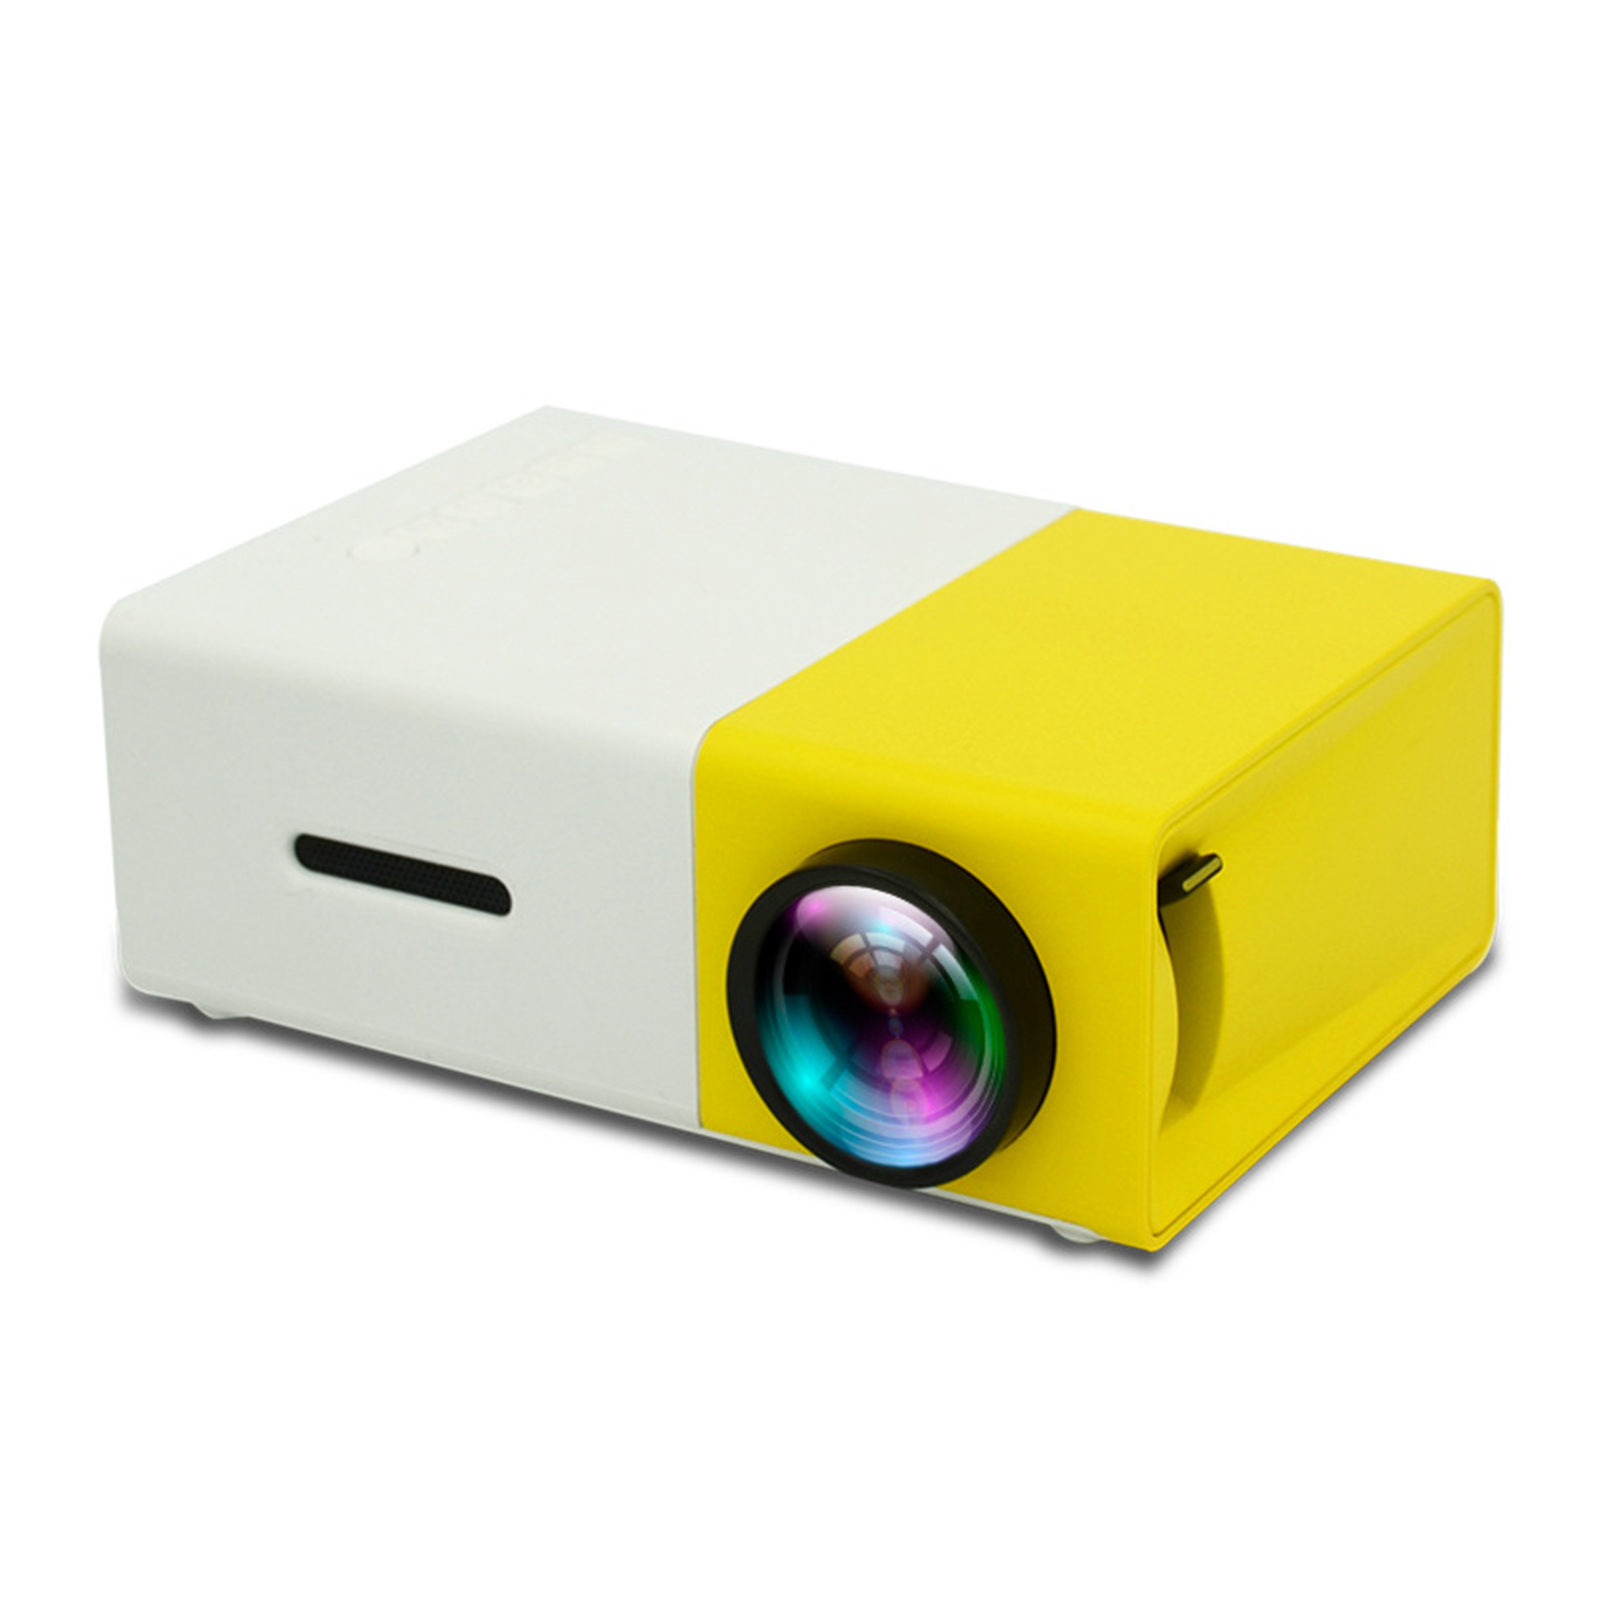 Portable LED Video Projector Home Theater 1080P Movie Projector with Remote Controller Support U-disk/HDMI-compatible/TF Card EU